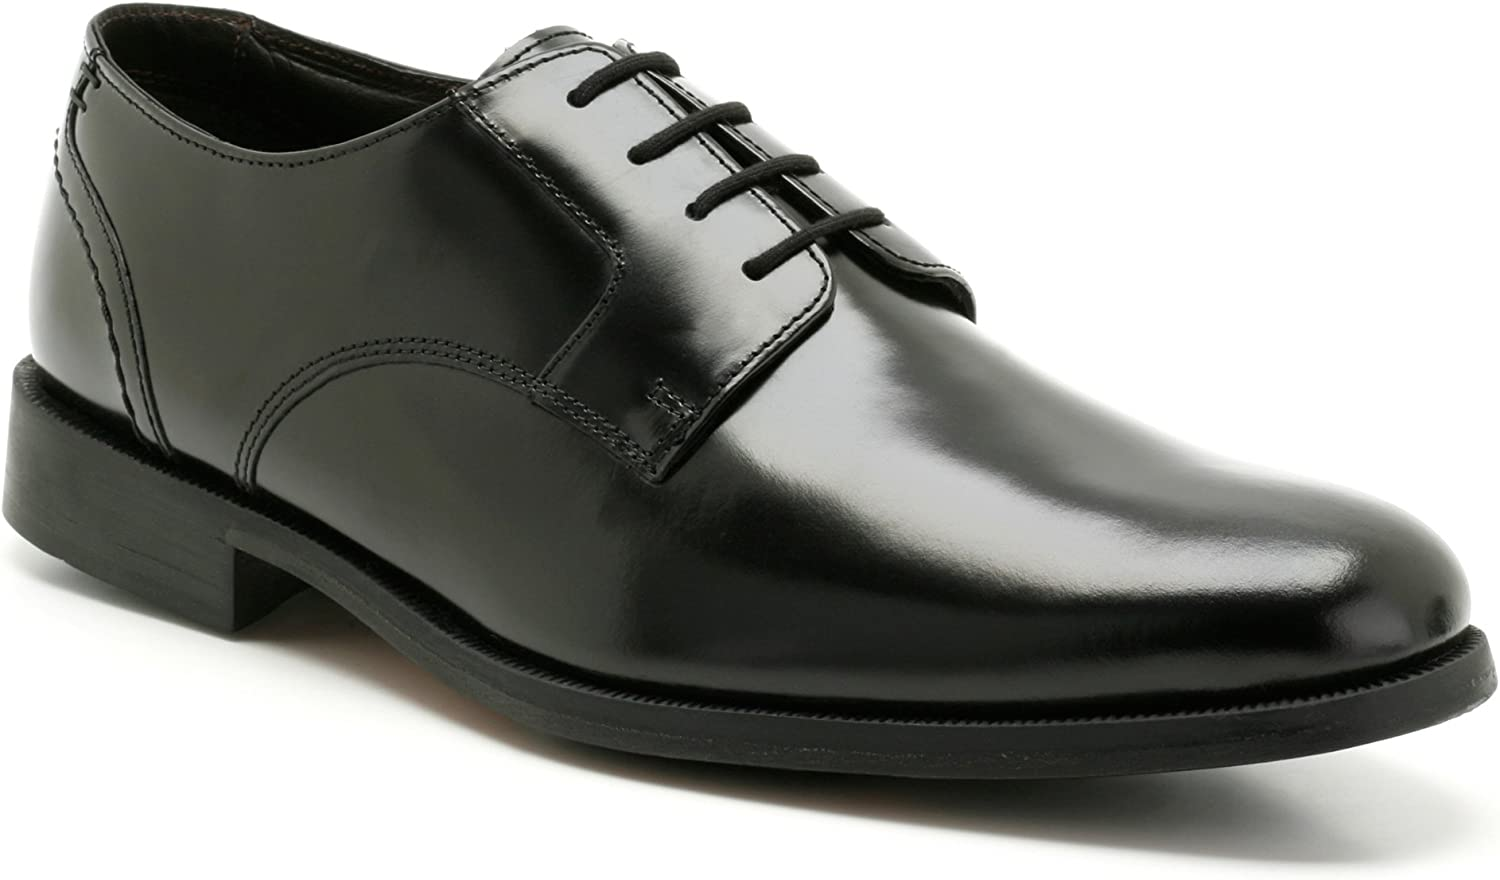 Clarks Mens Lace Up shoes Harvey Star